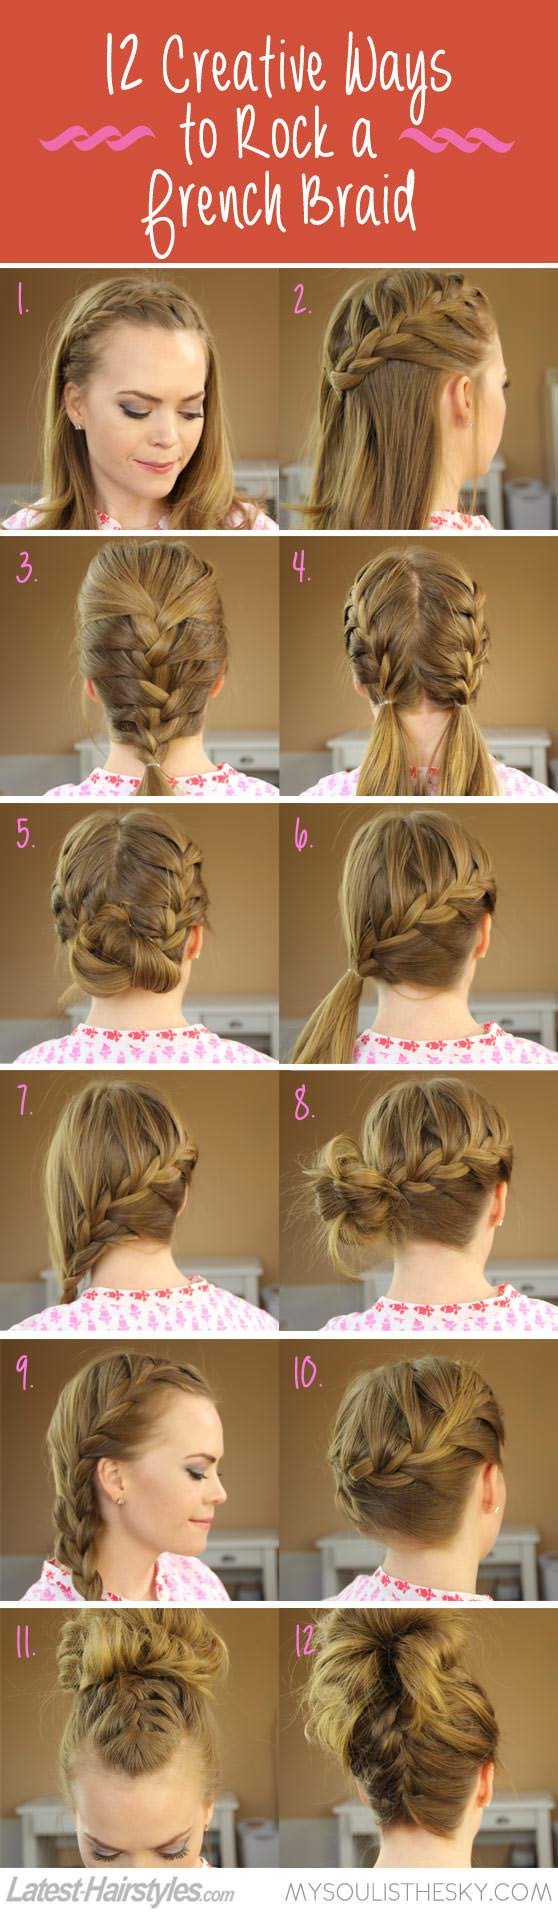 Hairstyle tutorial for French braid updo